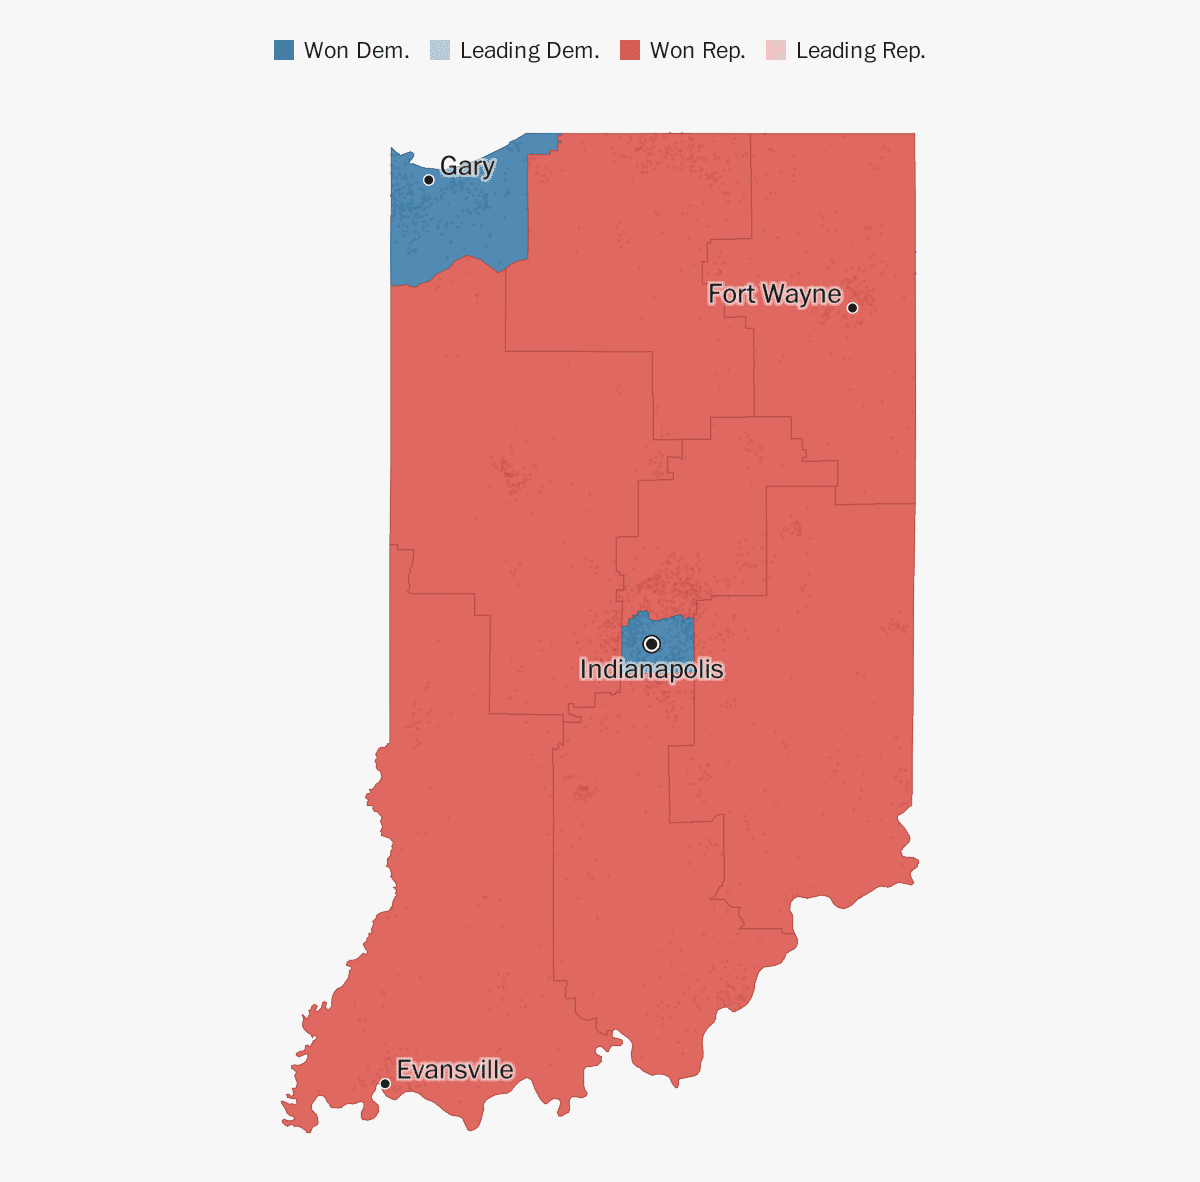 Indiana election results 2018 - The Washington Post